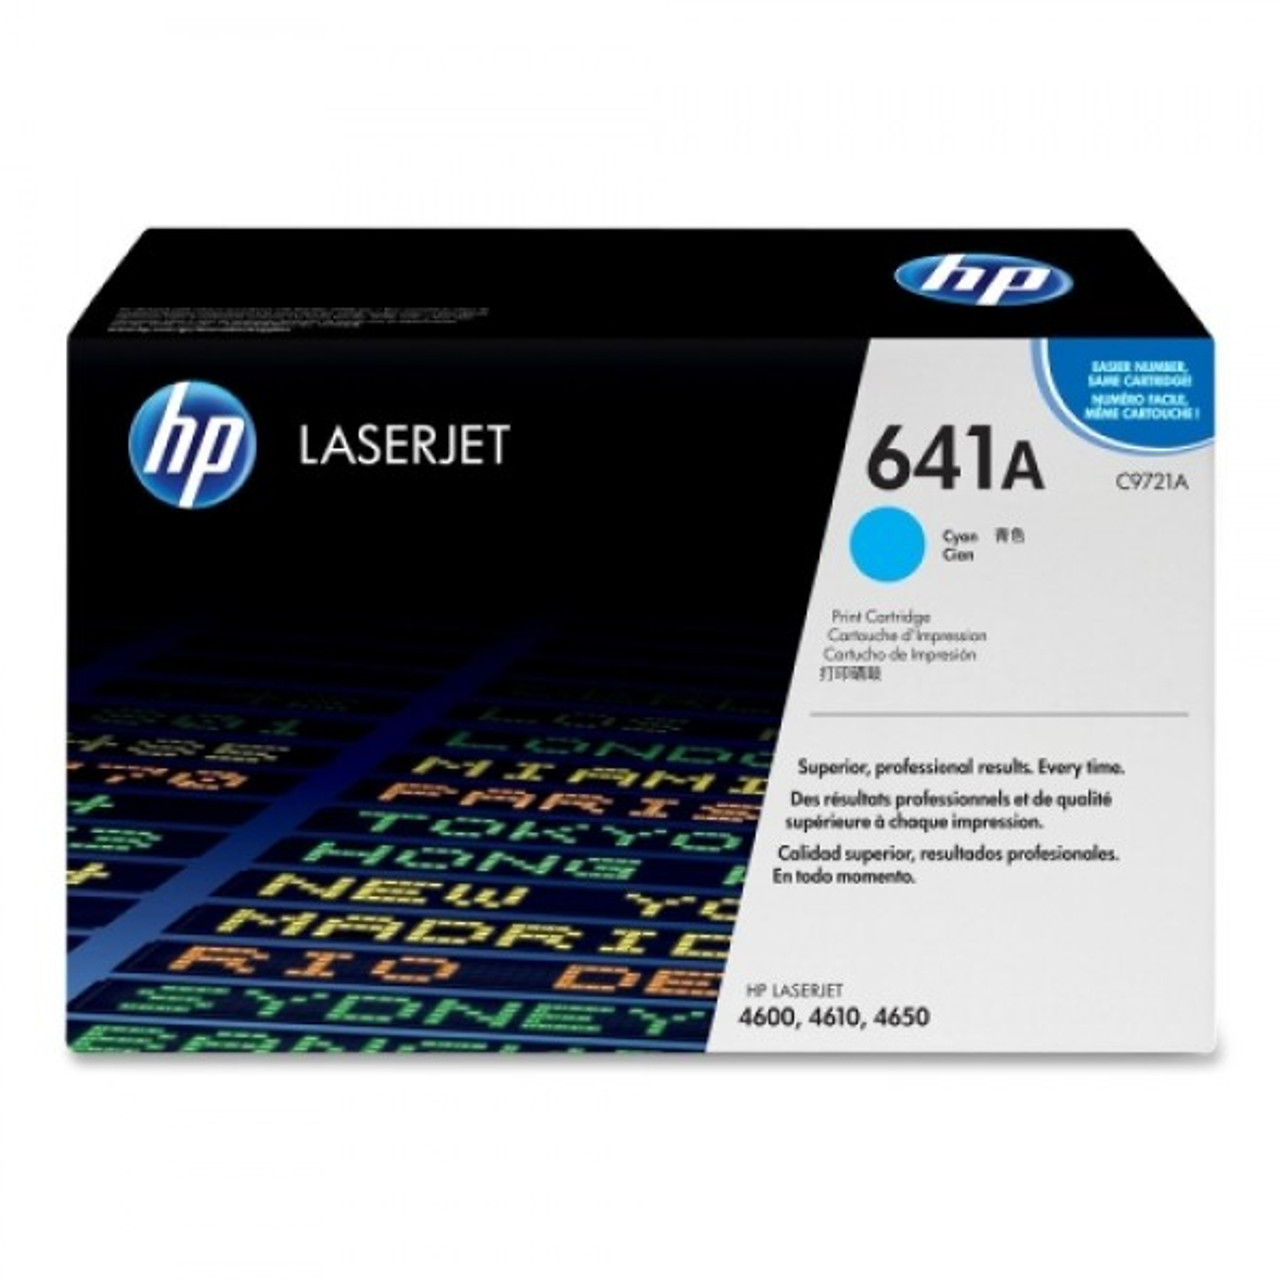 HP 4600 4650 Cyan Toner Cartridge - New